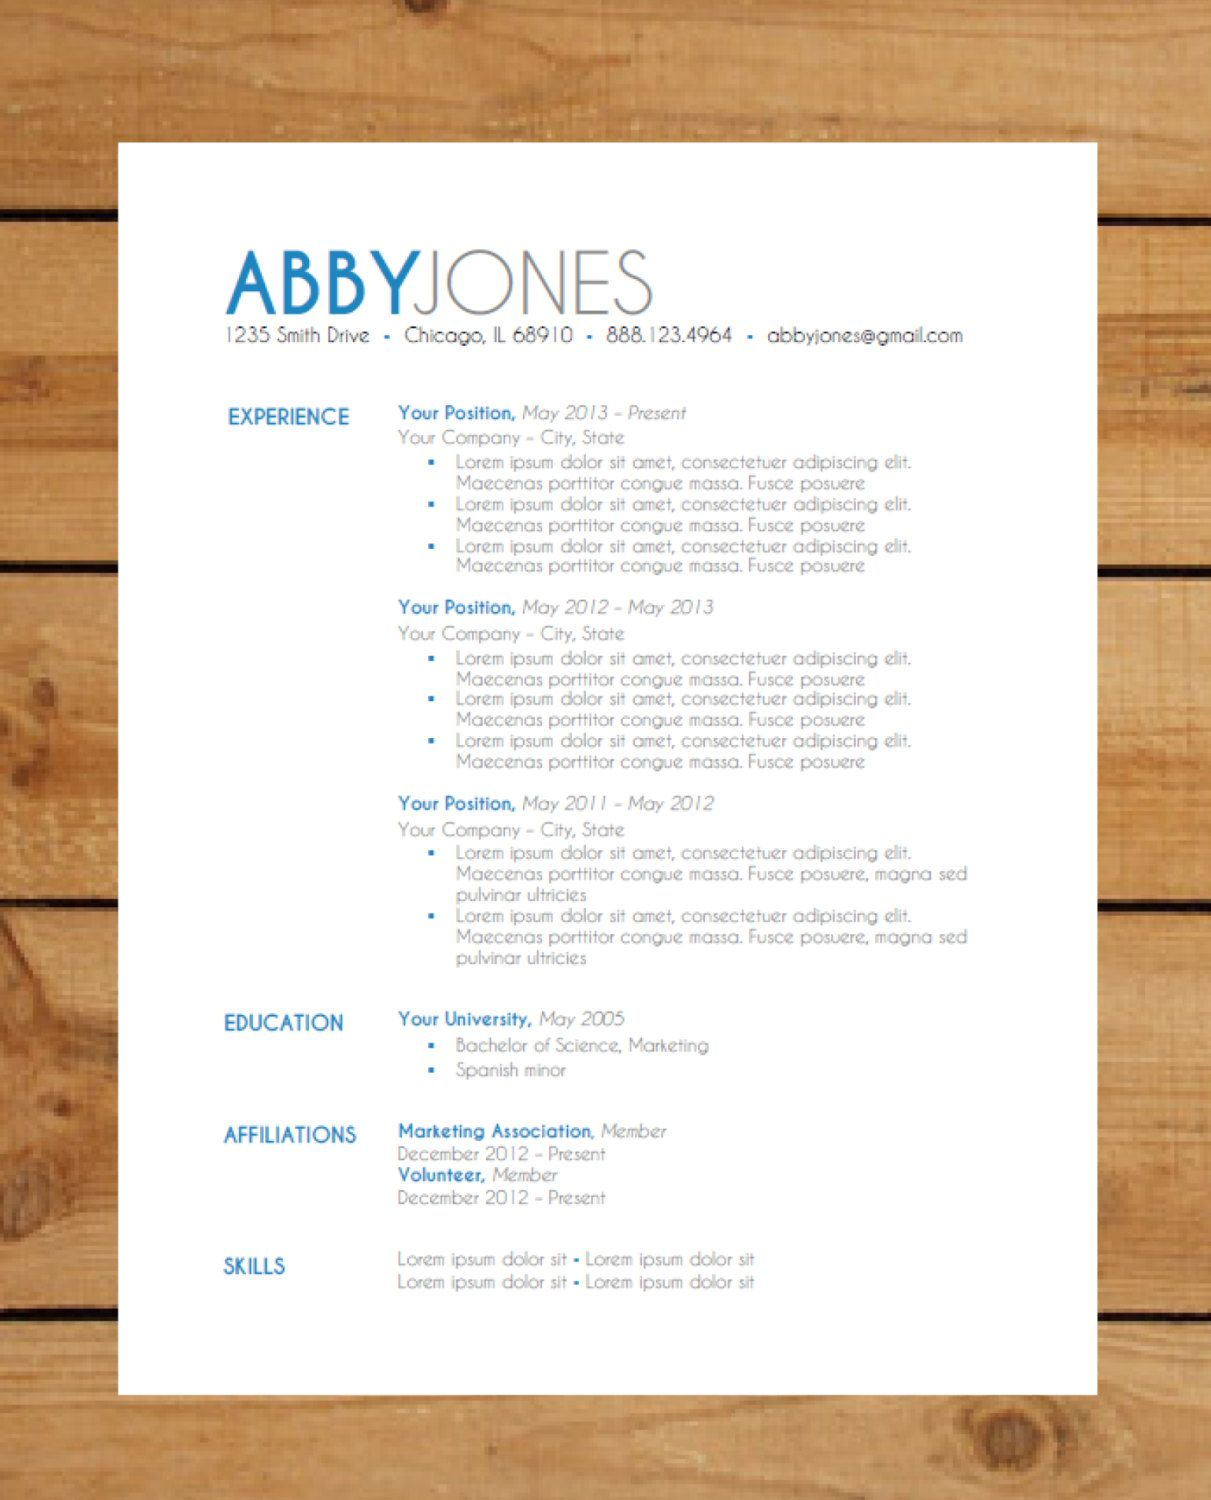 contemporary resume templates free jianbochencom 8a71dd3b798e84e22f9233b2b14a0529 contemporary resume templates free